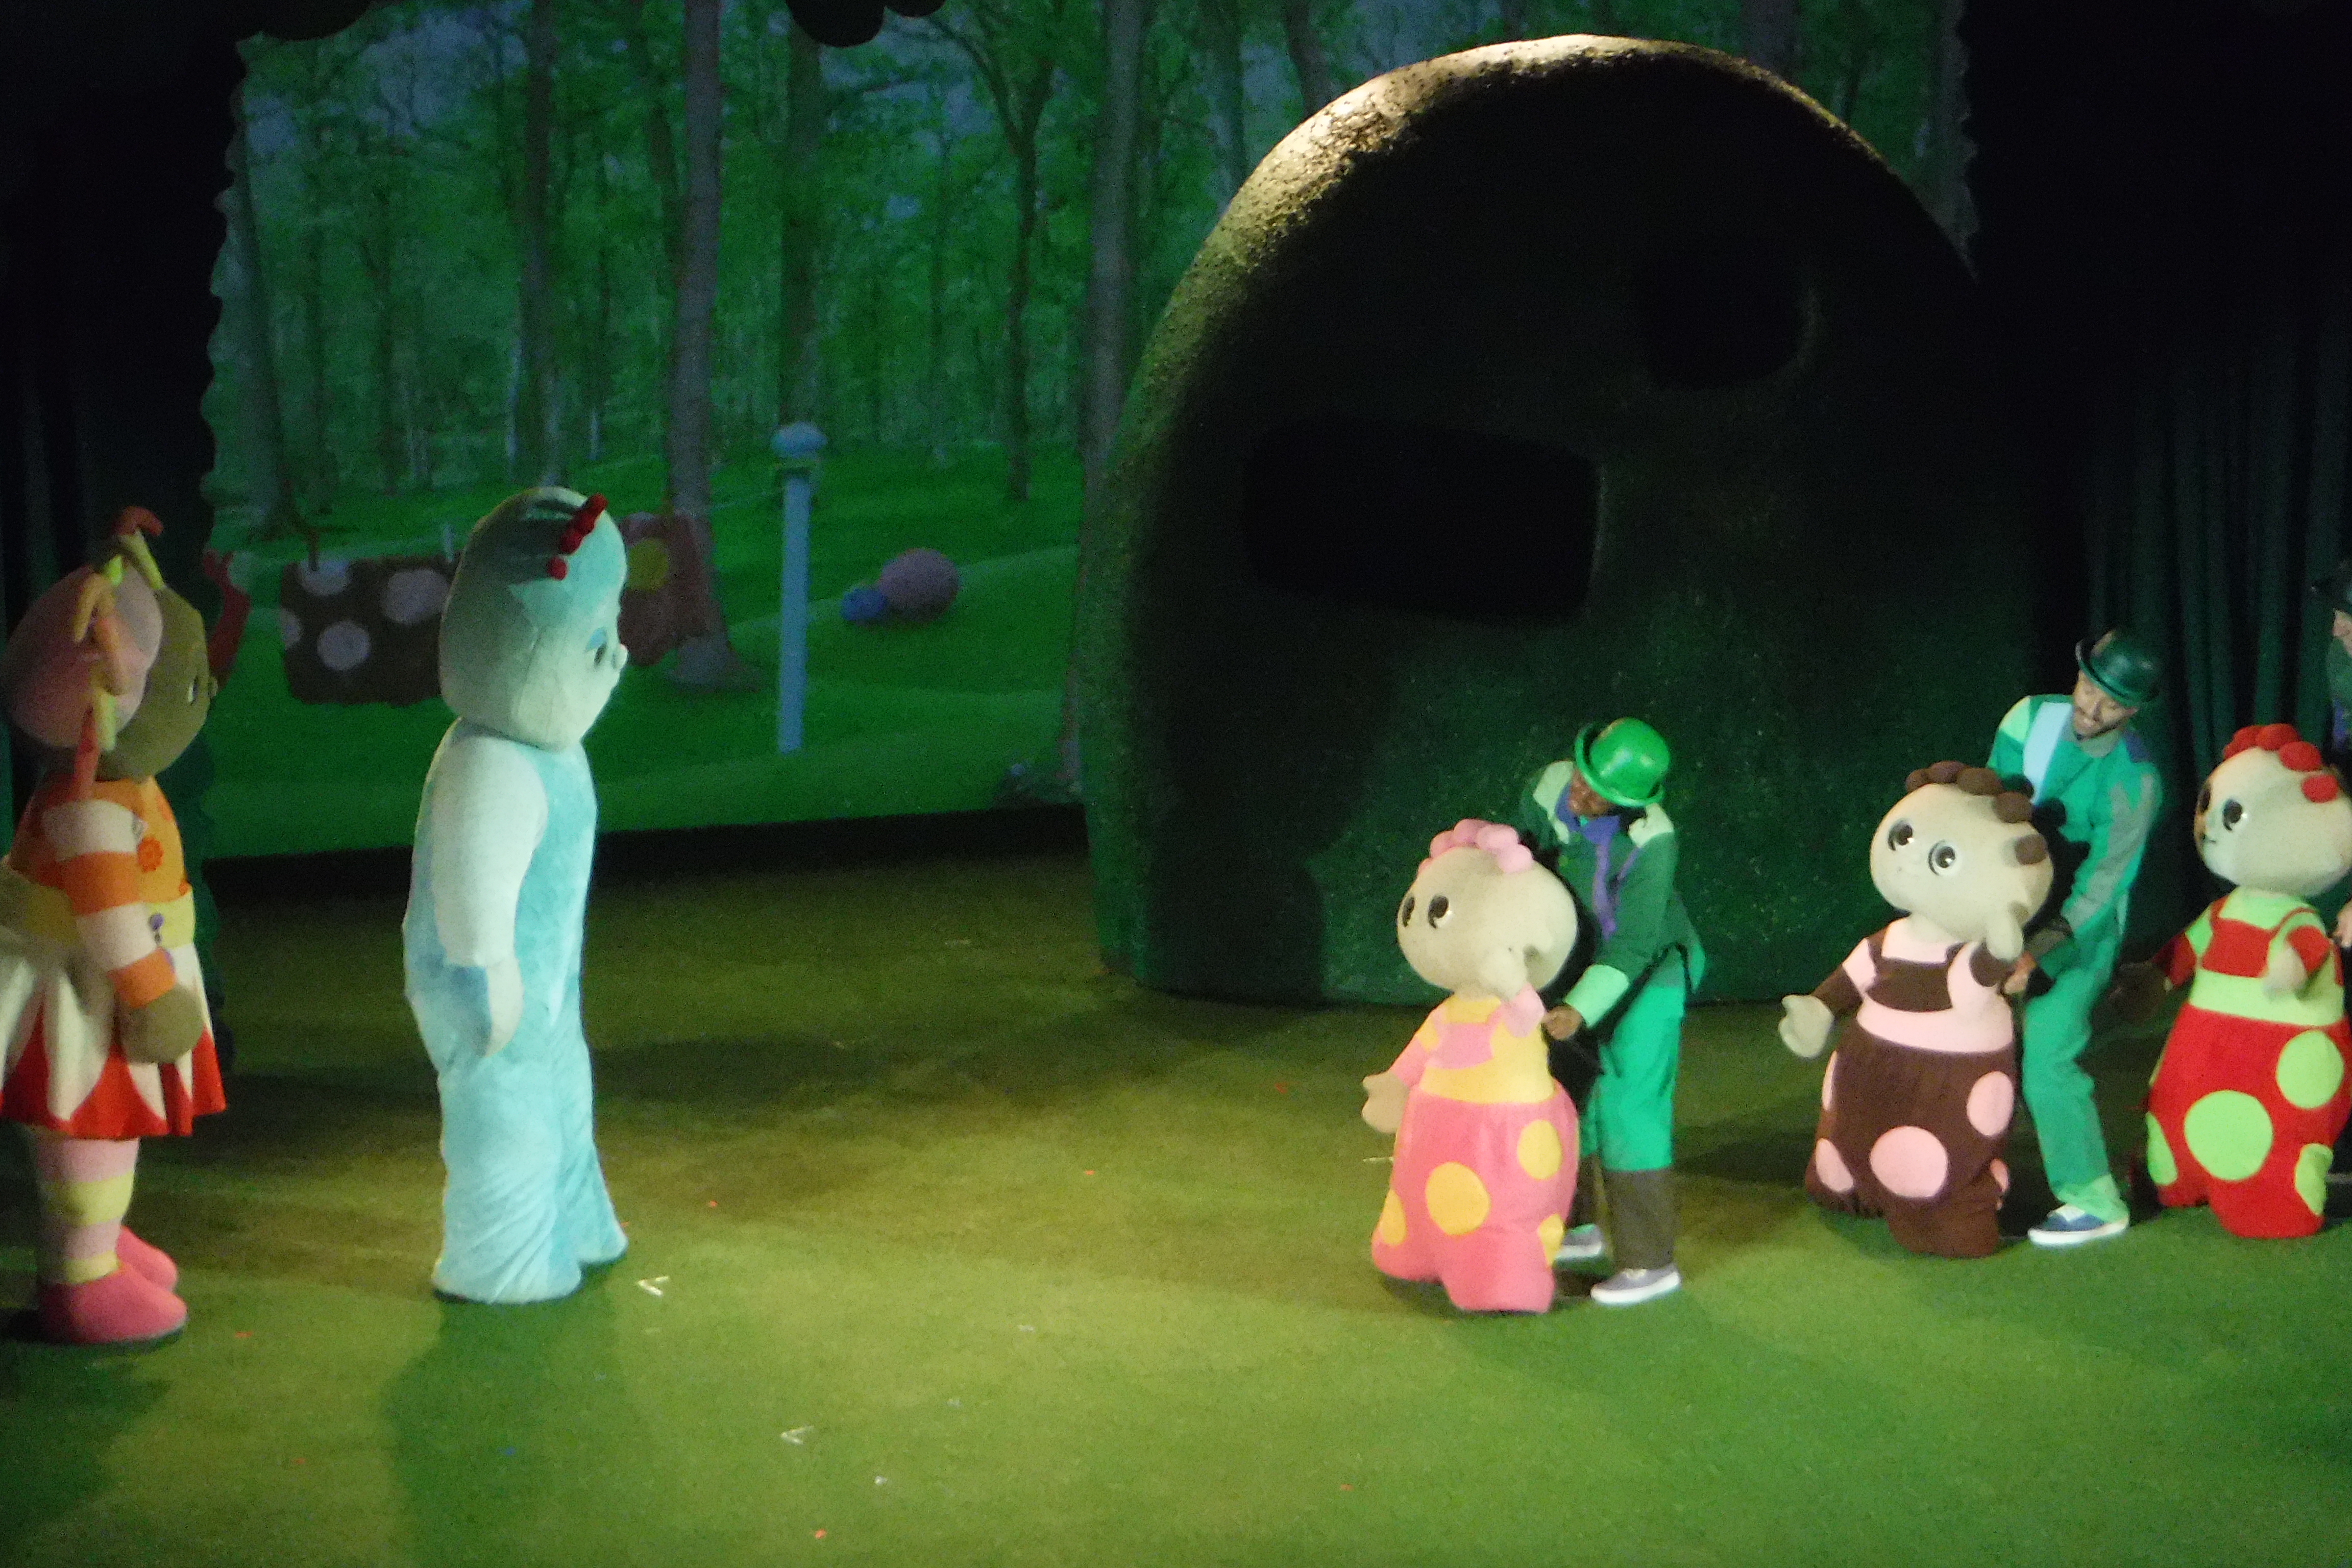 In the night garden live